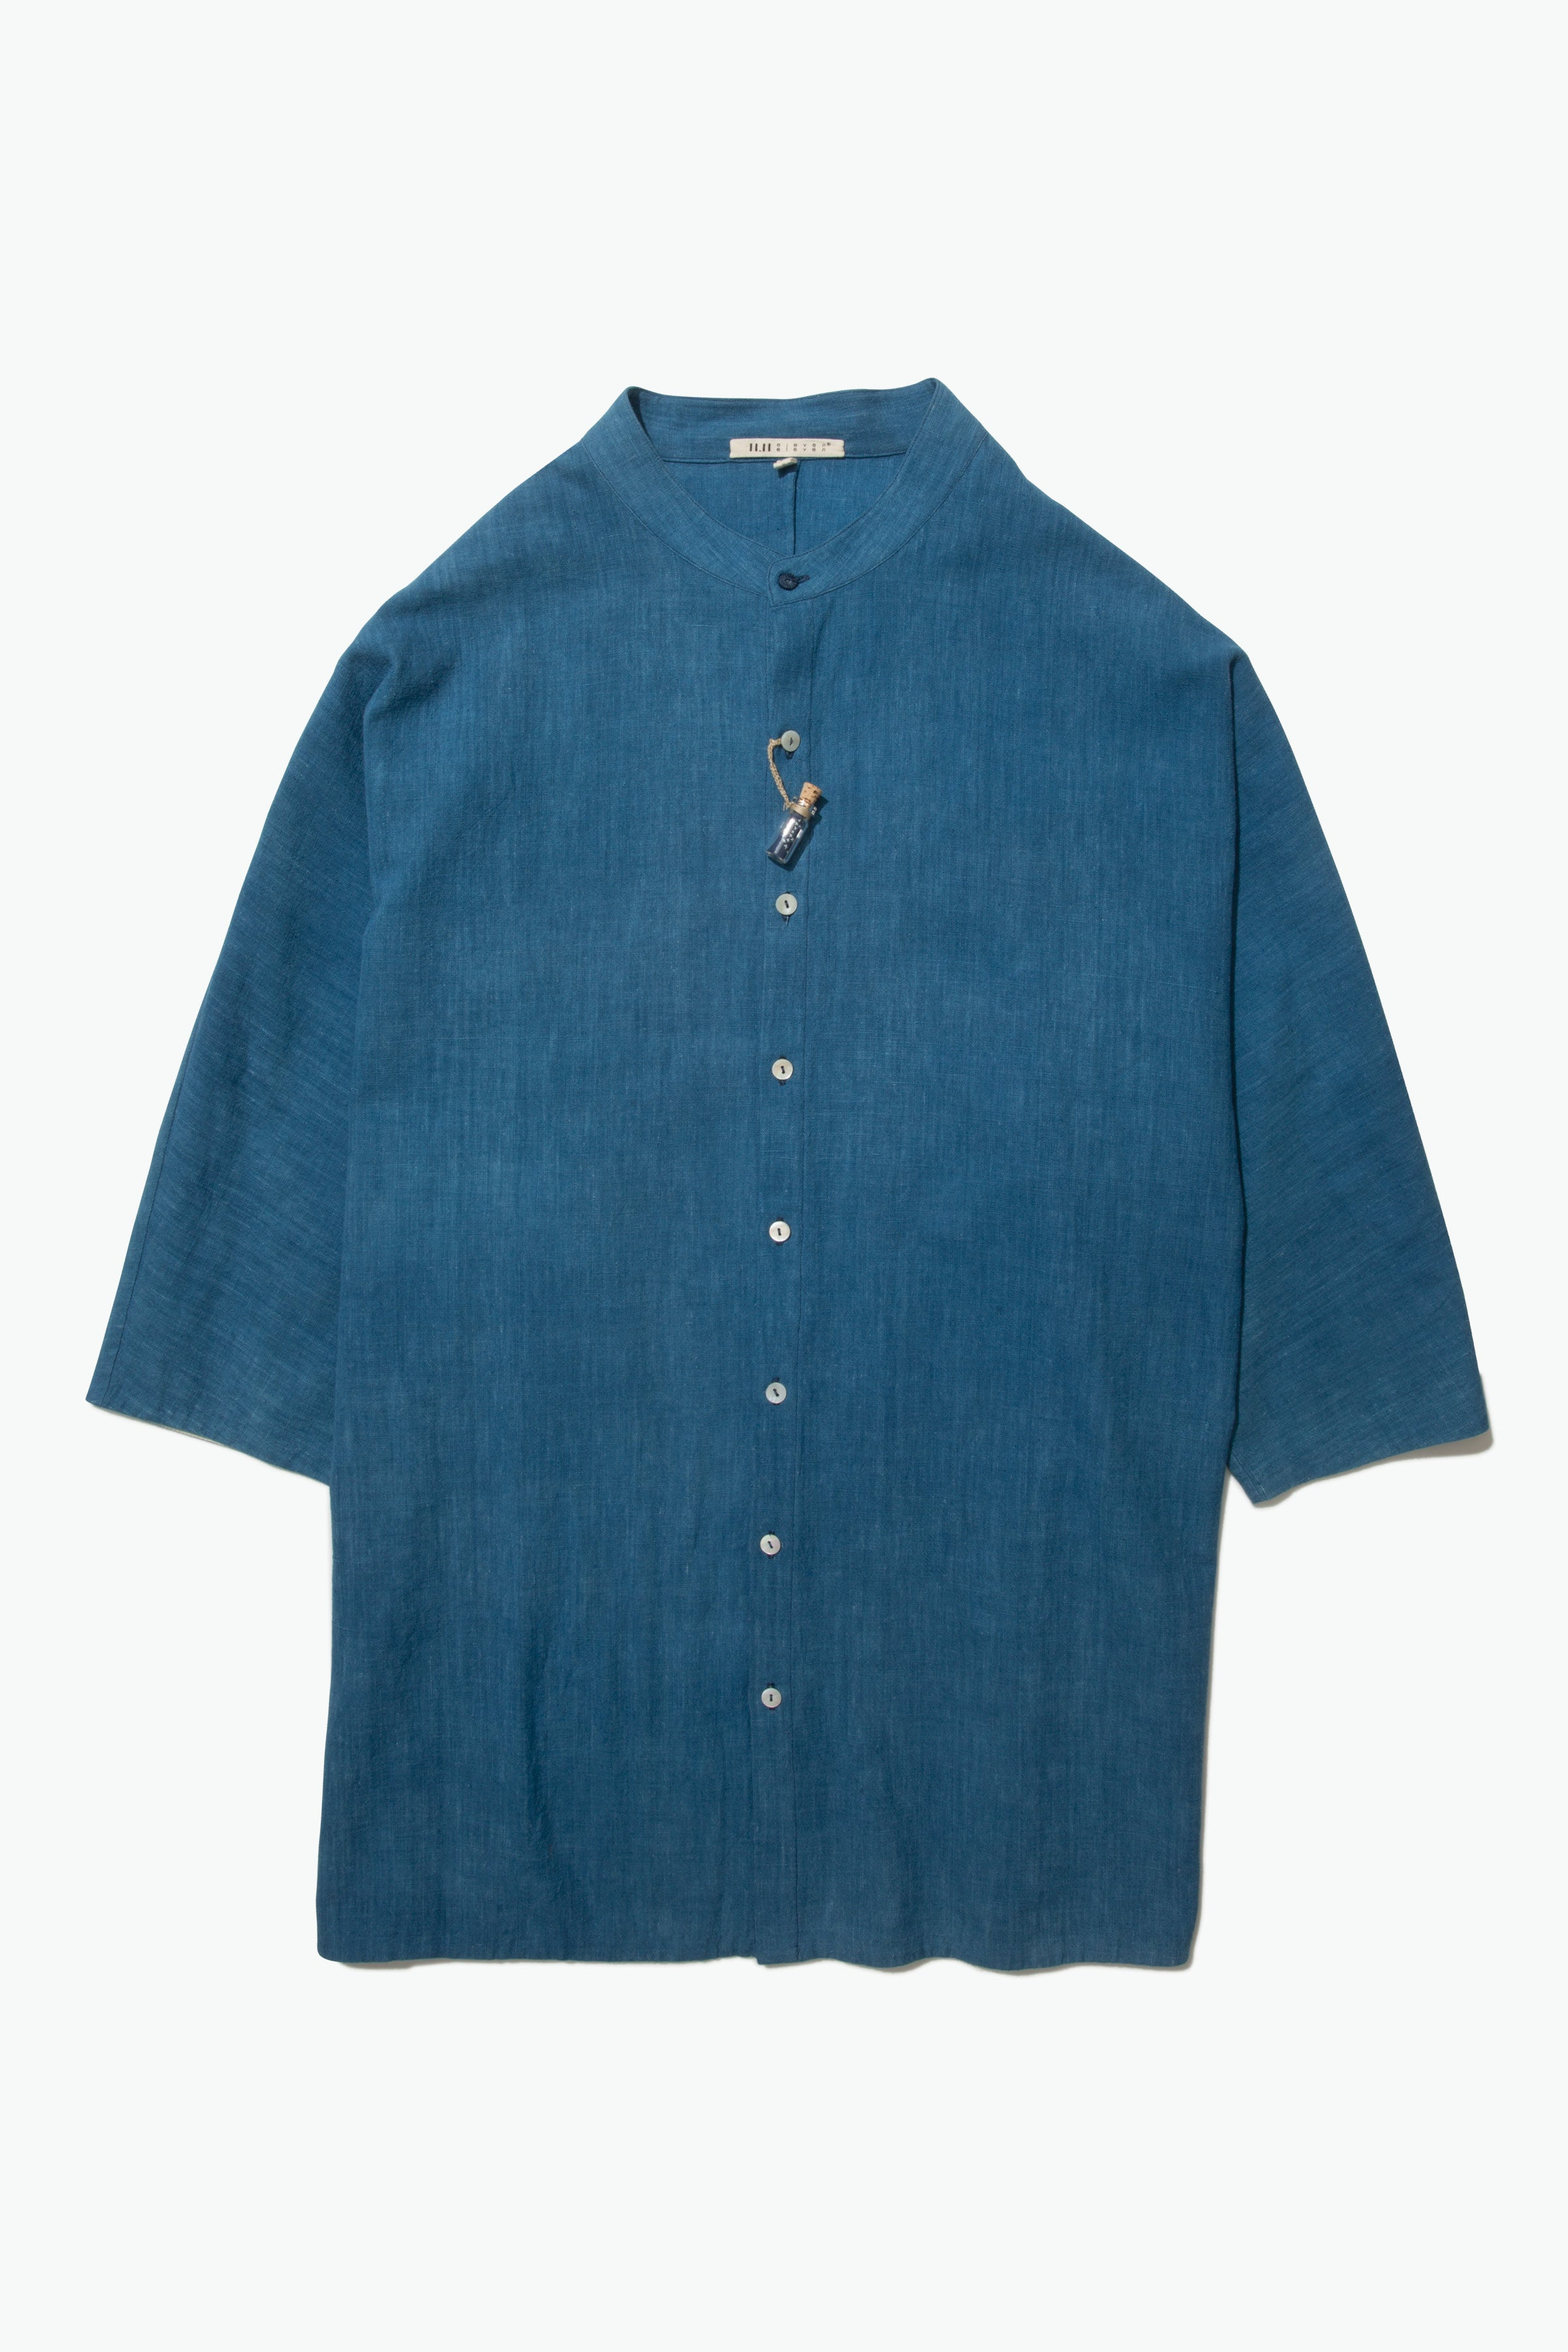 Edition 002 - Macca Shirt (Washed Indigo)